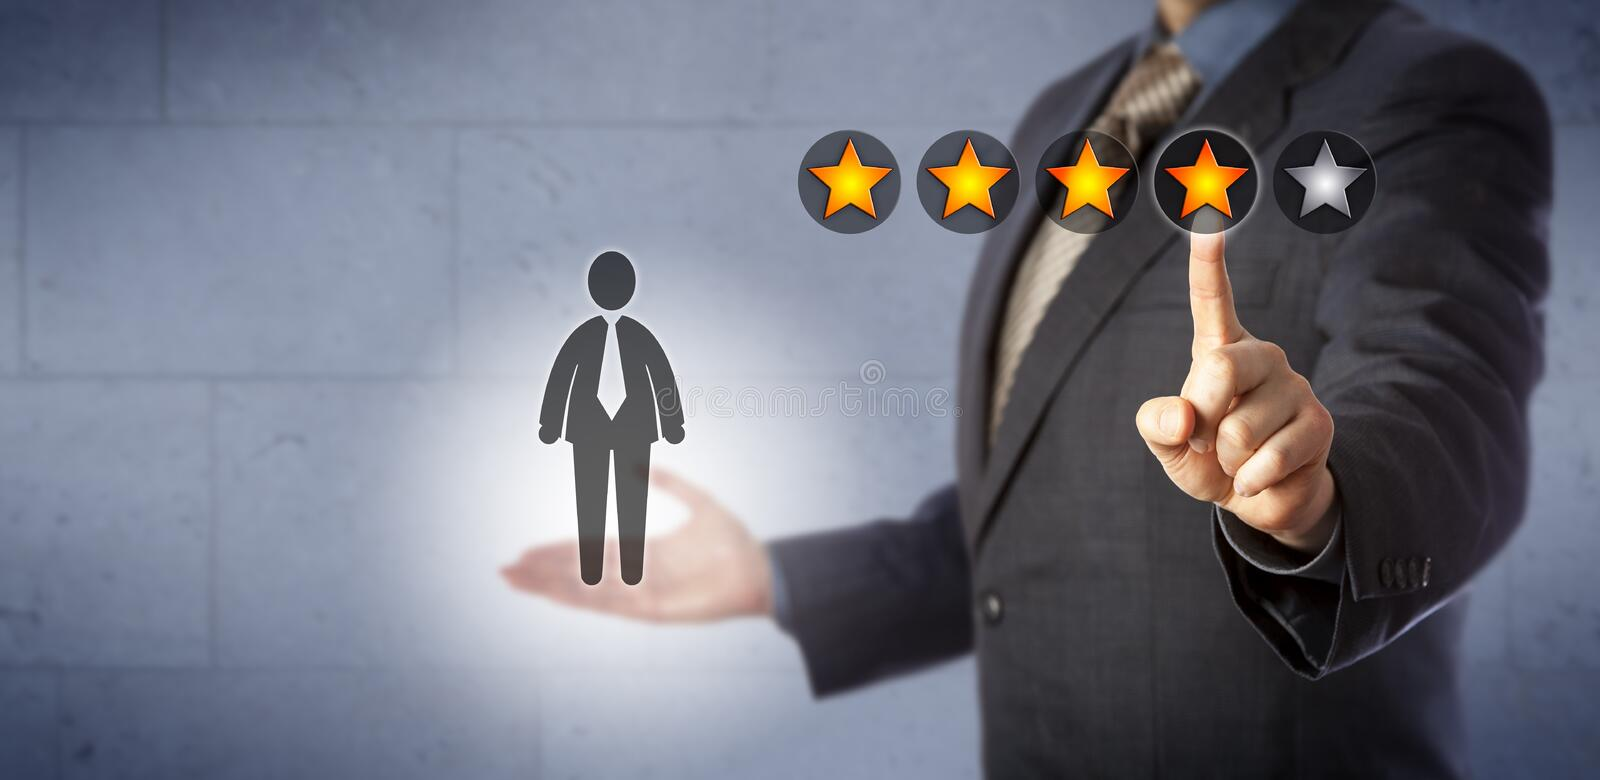 HR Manager Giving A Four Star Rating Out Of Five royalty free stock photo